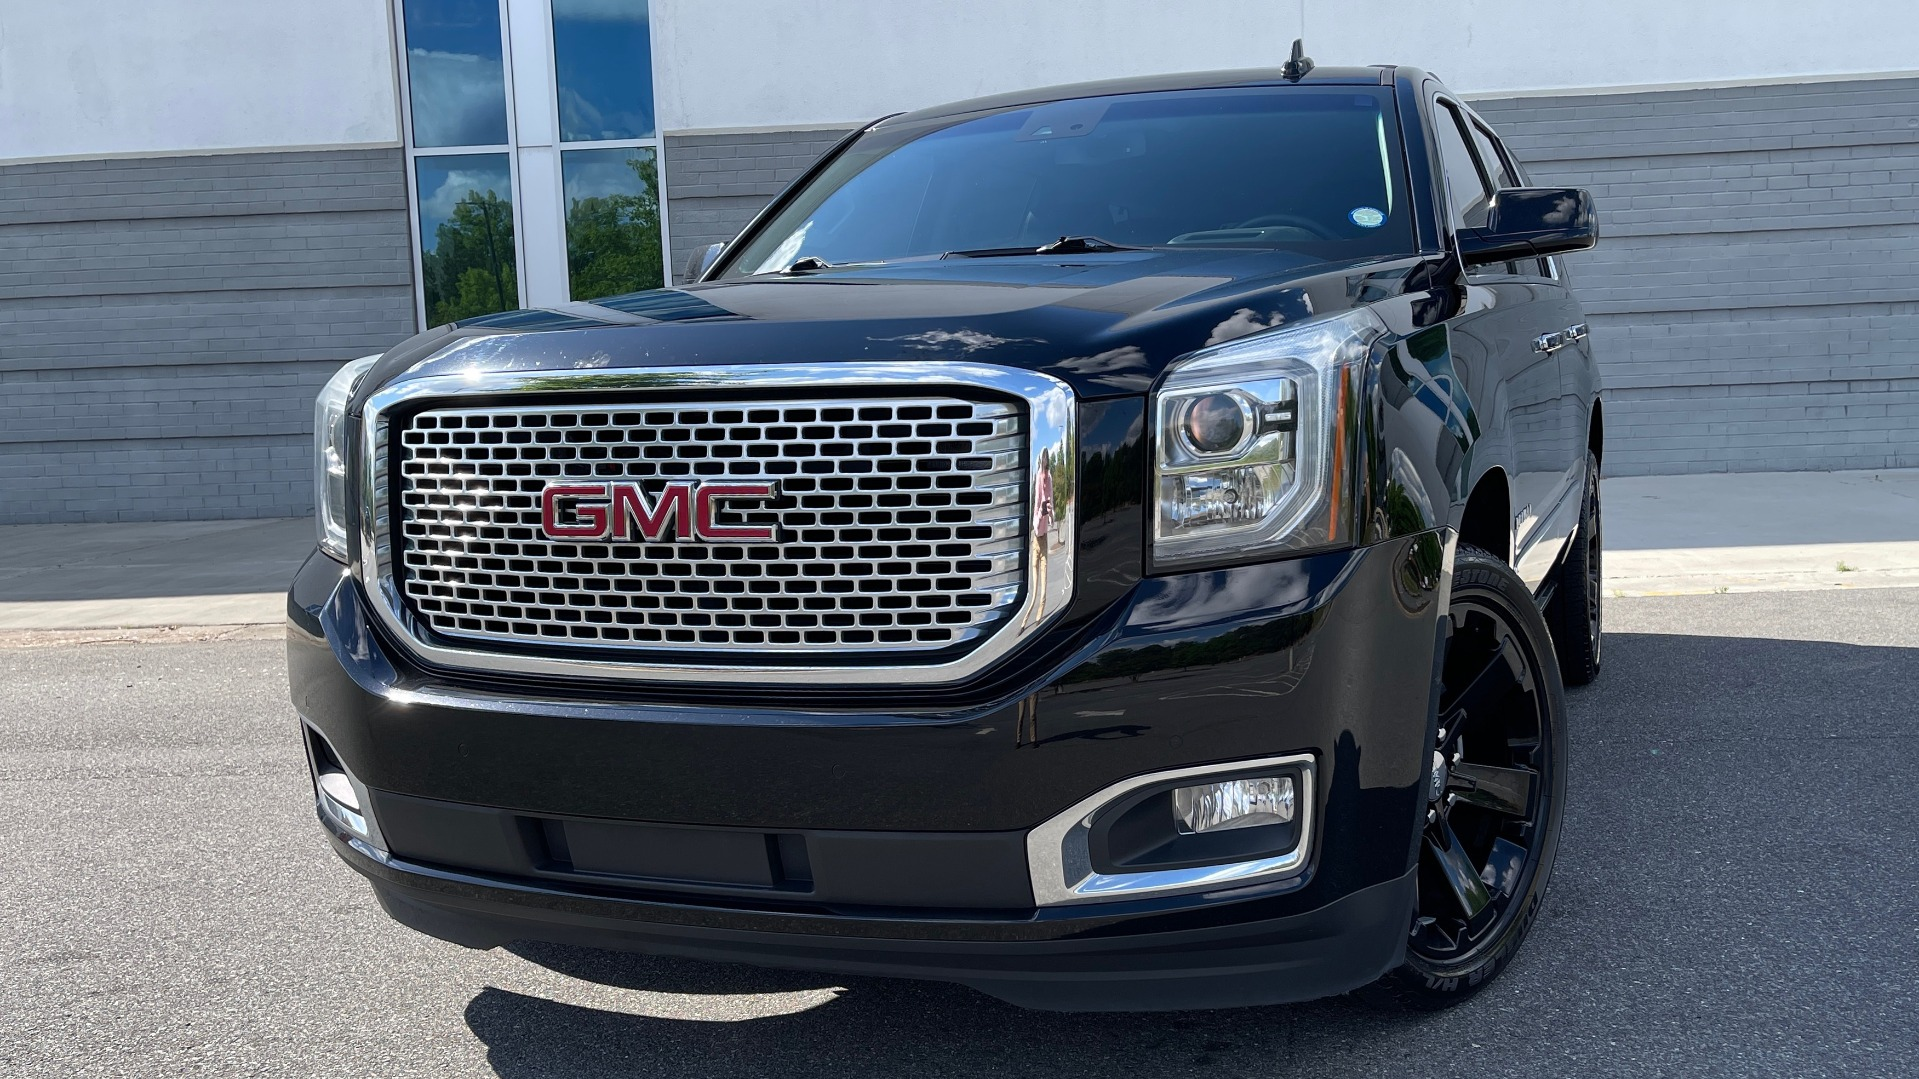 Used 2017 GMC YUKON DENALI 4WD / OPEN ROAD / NAV / ENTERTAINMENT / SUNROOF / ADAPT CRUISE for sale Sold at Formula Imports in Charlotte NC 28227 4